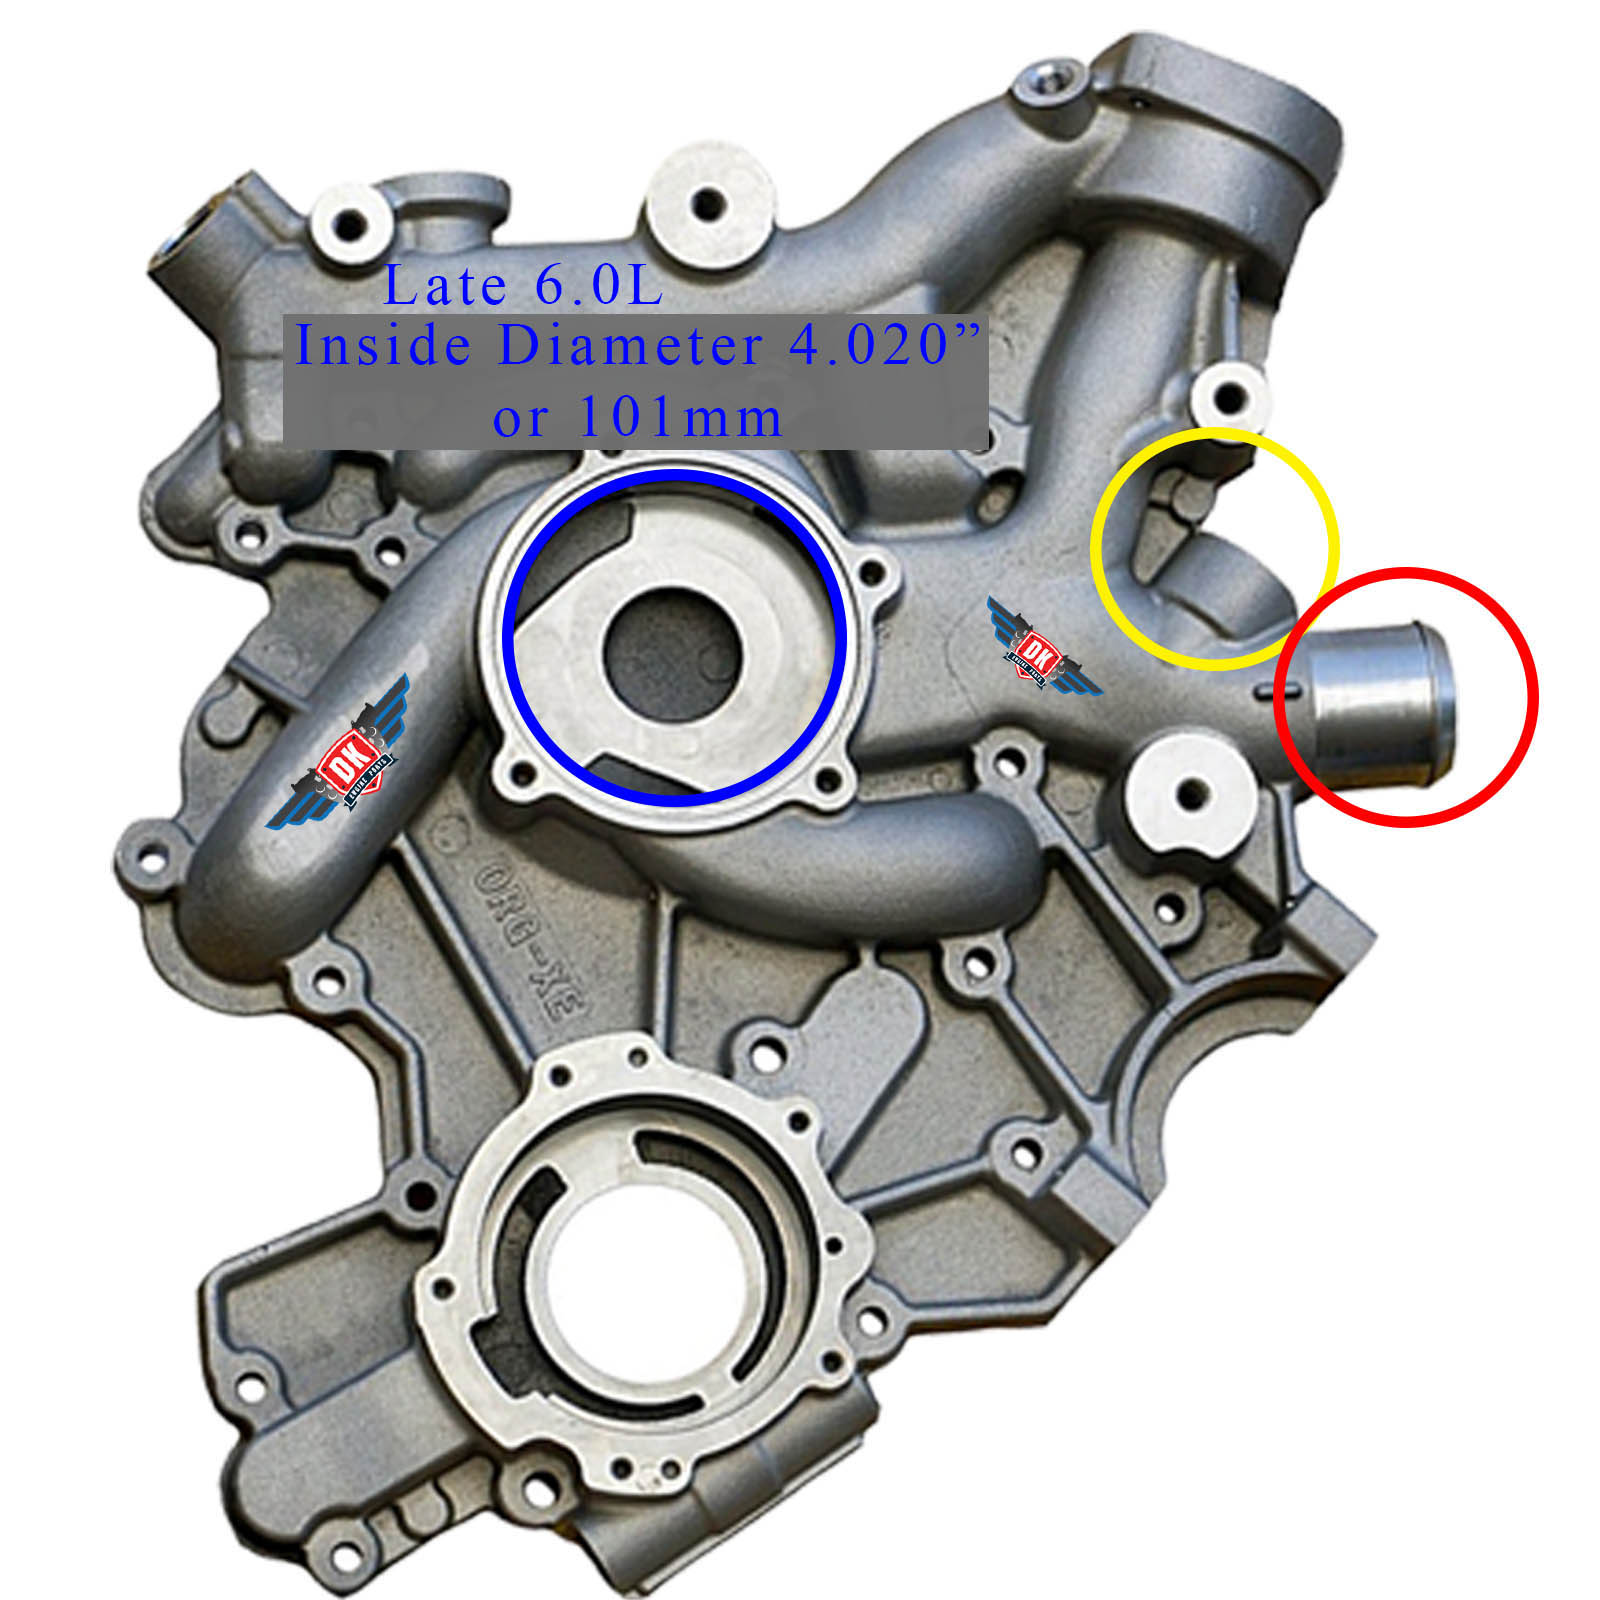 Fits Ford Powerstroke 6.0L DK Engine Parts 2004.5-2010 New Front Cover Assembly with Gaskets